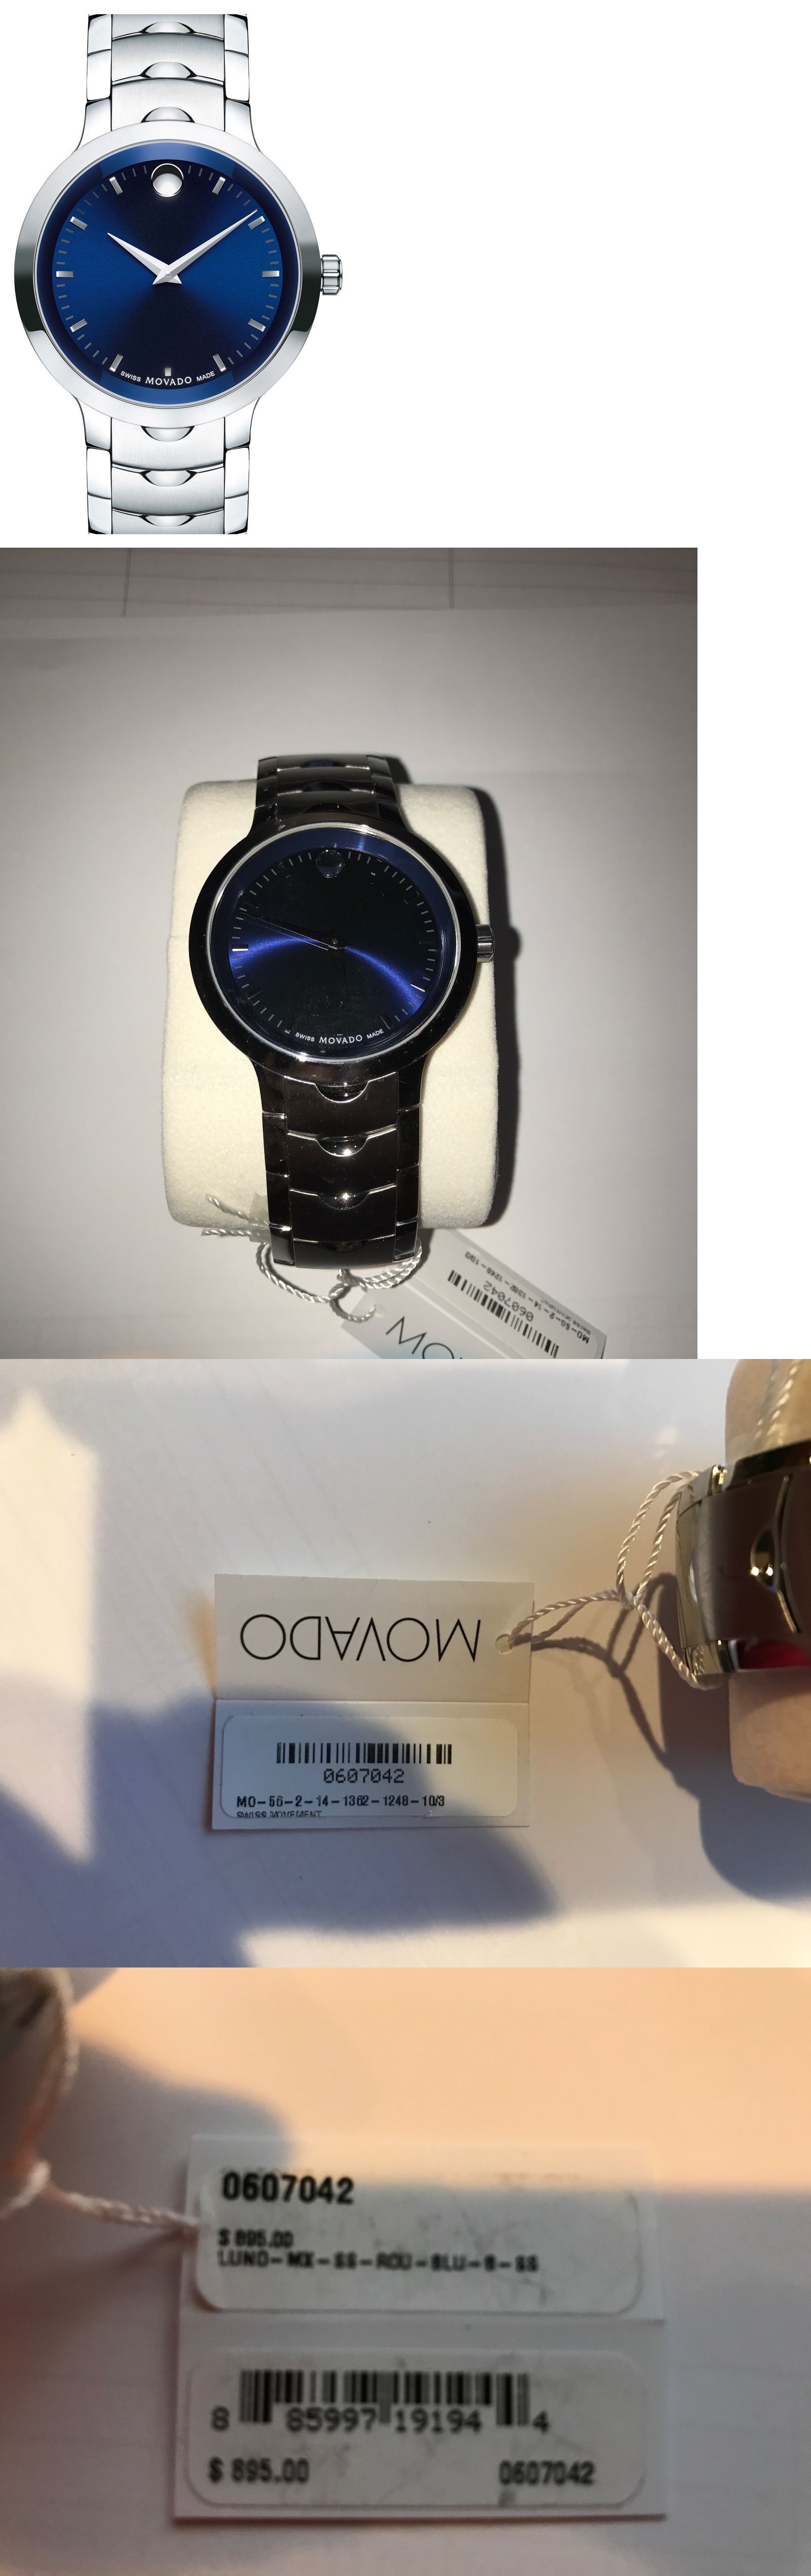 movado watches ca luno black sport pvd s men watch amazon dp